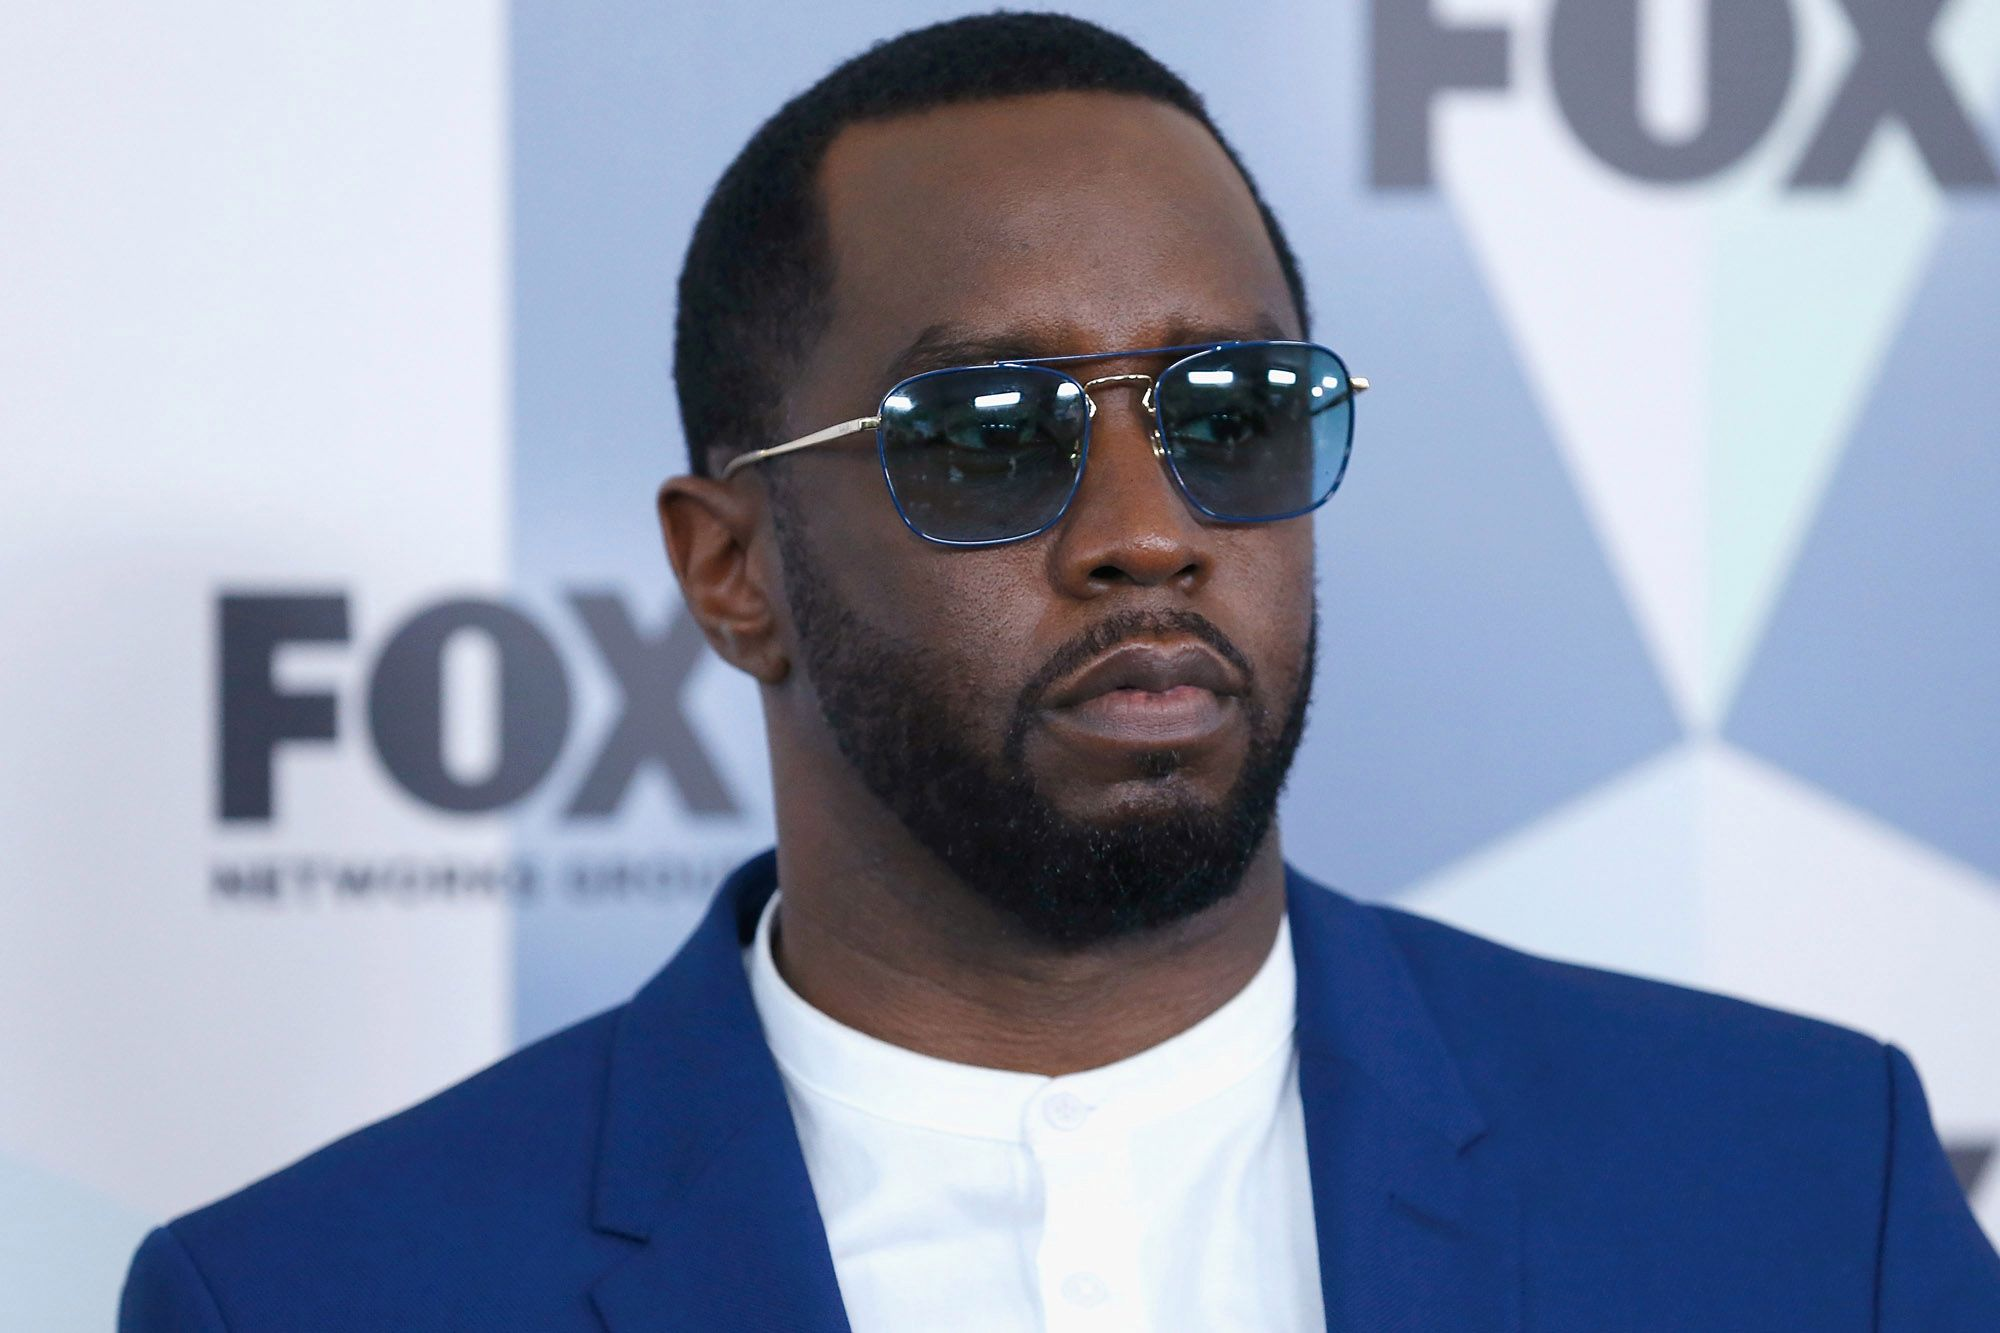 Diddy Celebrated The Birthday Of His Mother – Check Out The Video He Dropped To Mark The Event